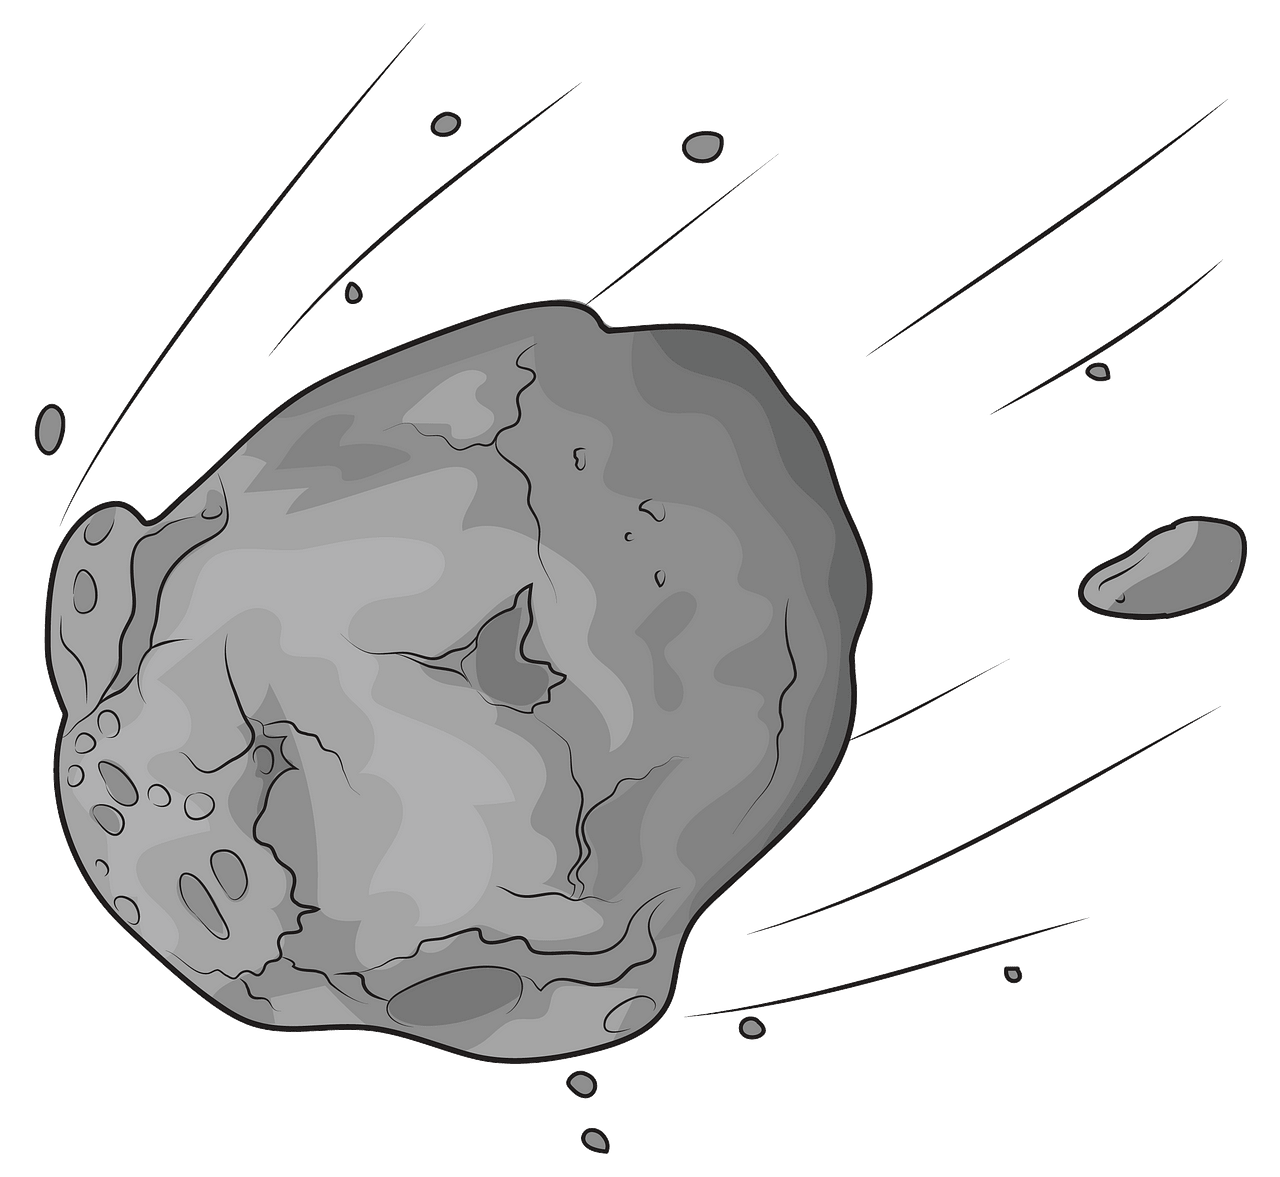 Asteroid clipart. Free download..